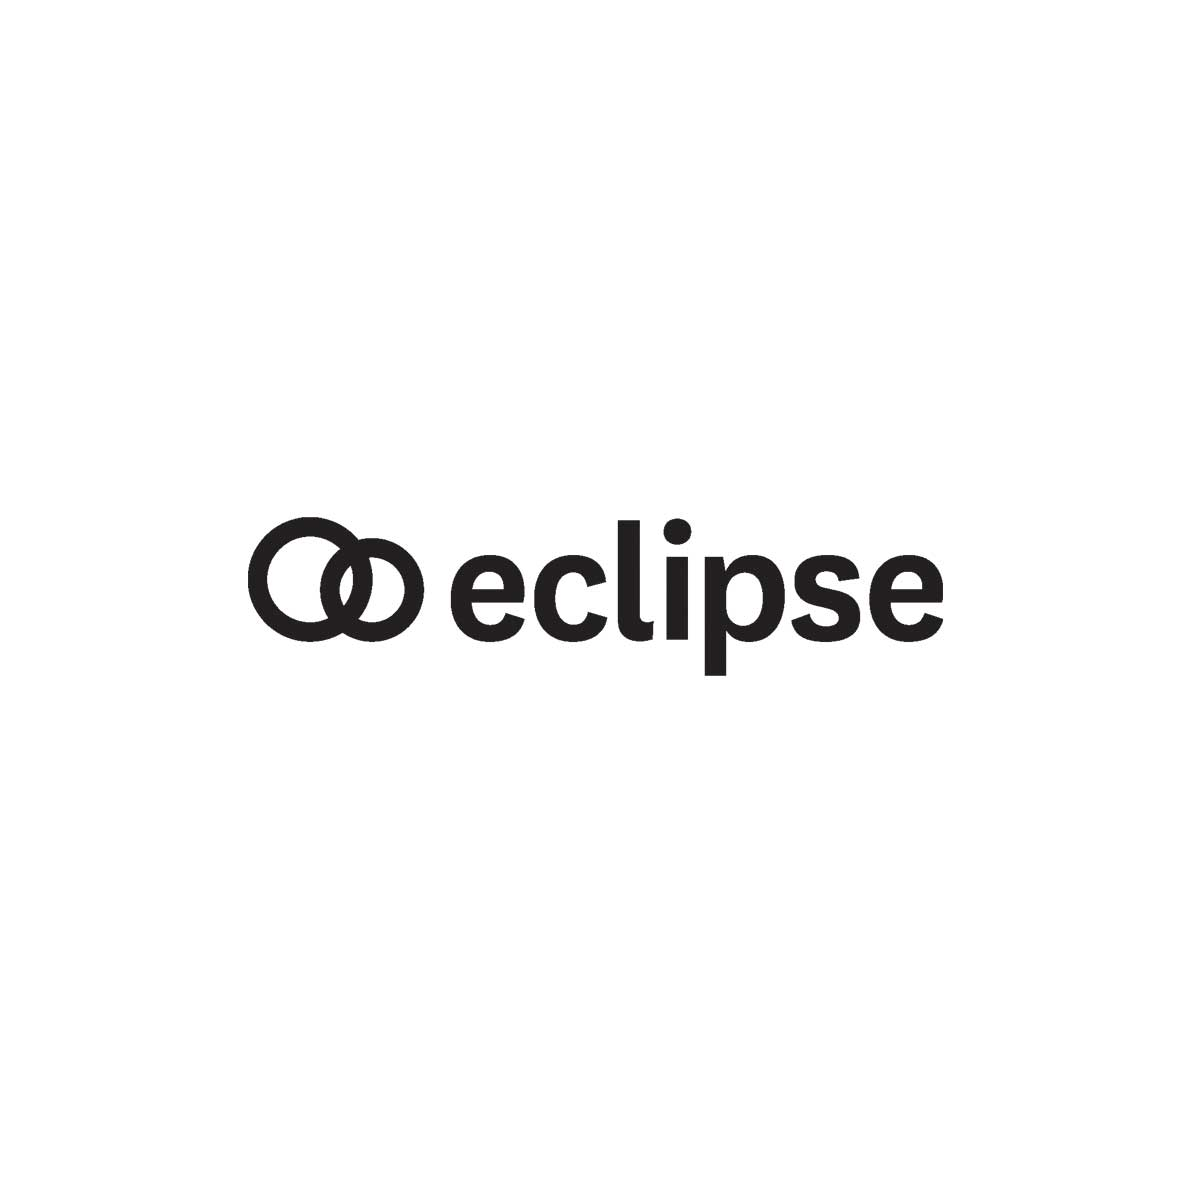 Eclipse Technology Solutions branding